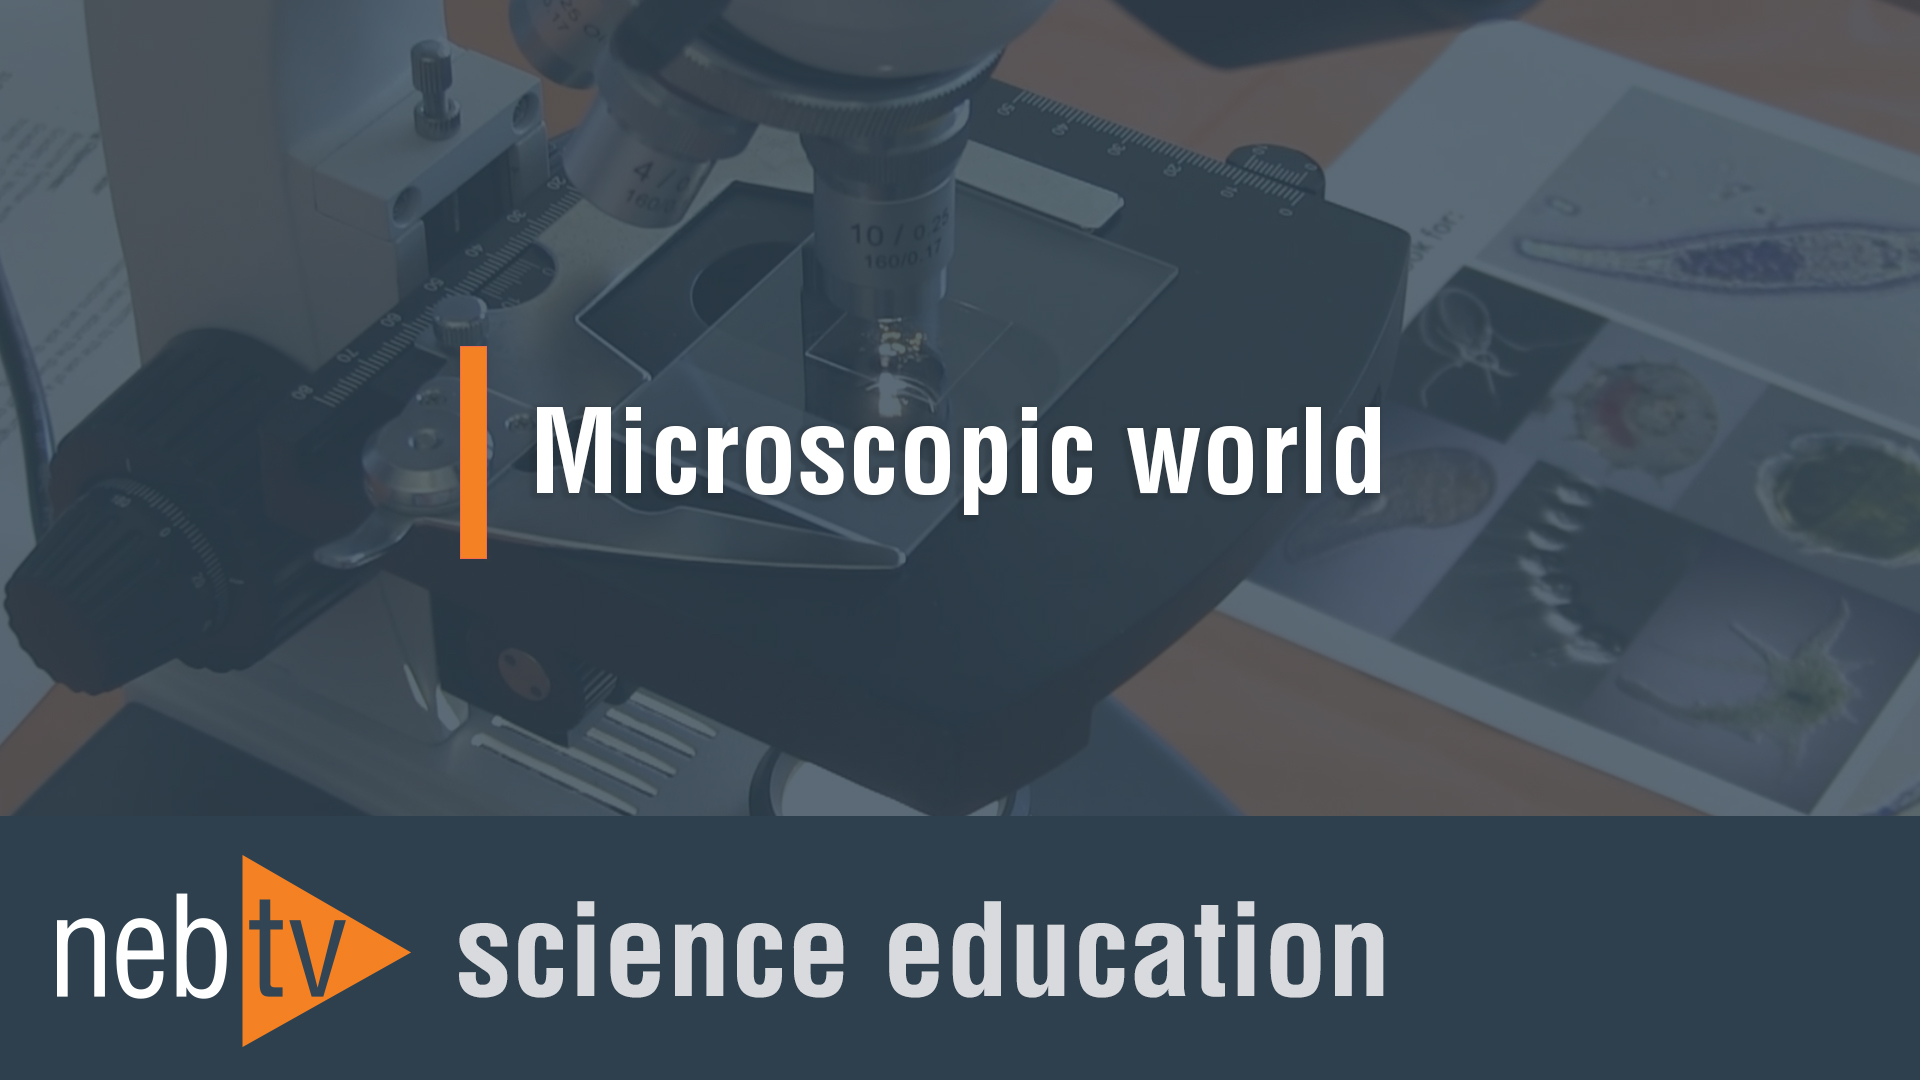 NEBTV_SciEdu_MicroscopicWorld_1920